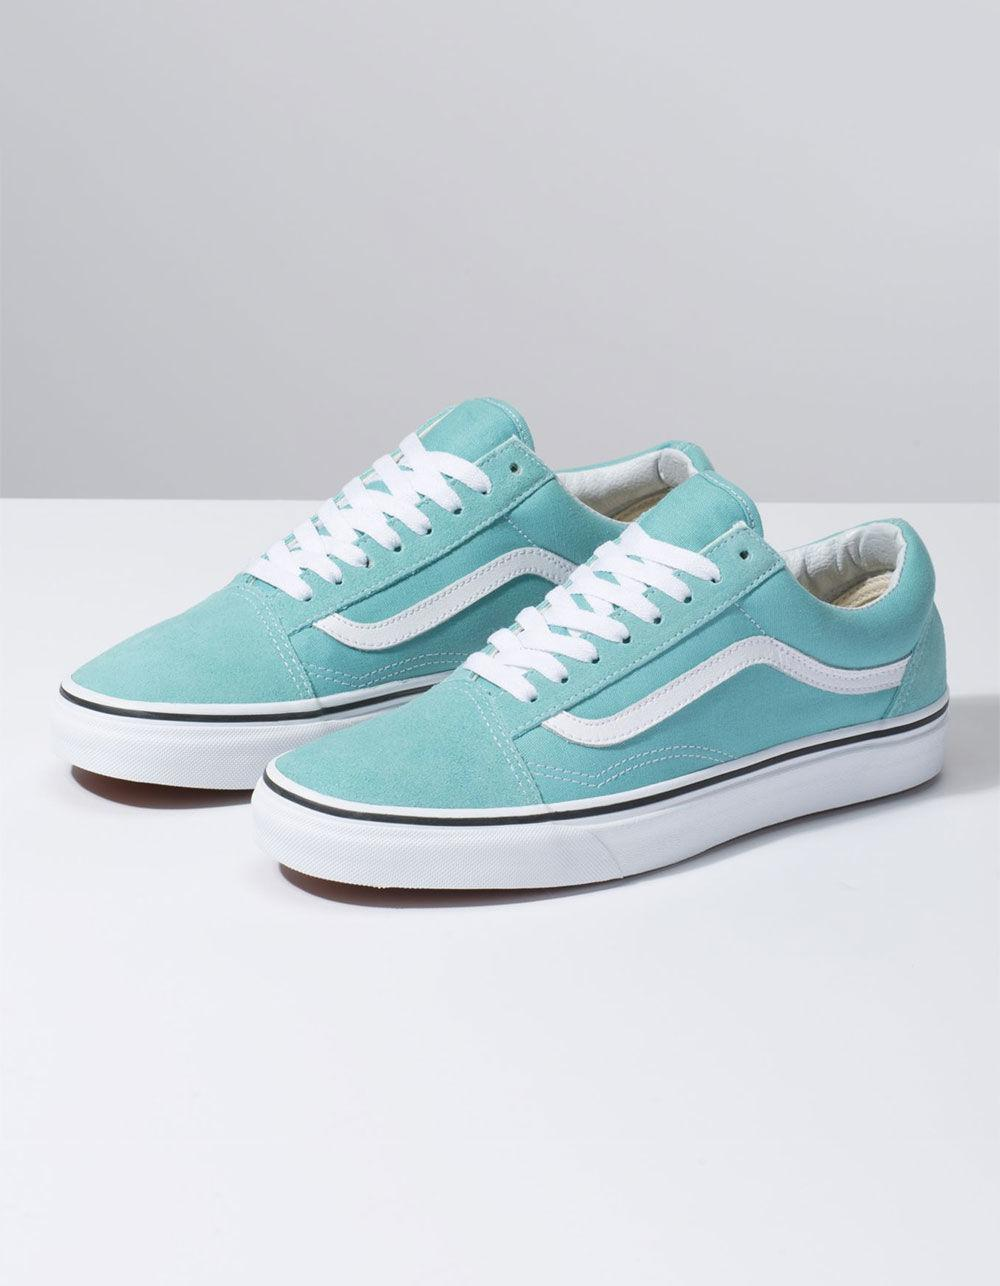 e9dc8f3c67 Lyst - Vans Old Skool Aqua Haze   True White Shoes